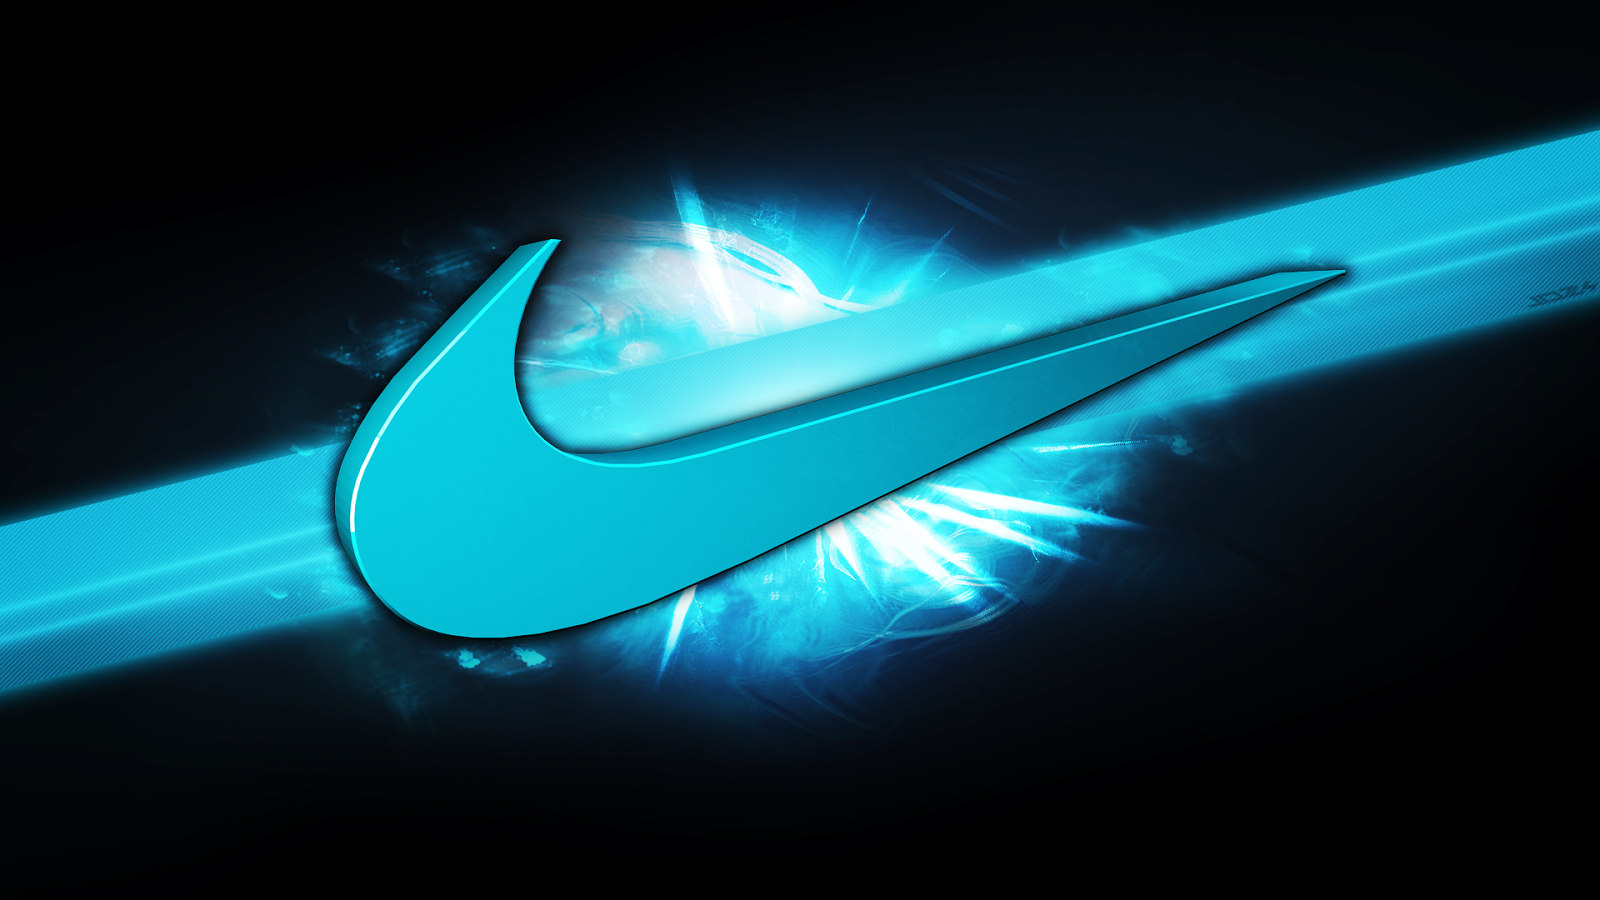 Hd wallpaper nike - Revolution Wallpaper Nike Hd Wallpaper 1080p